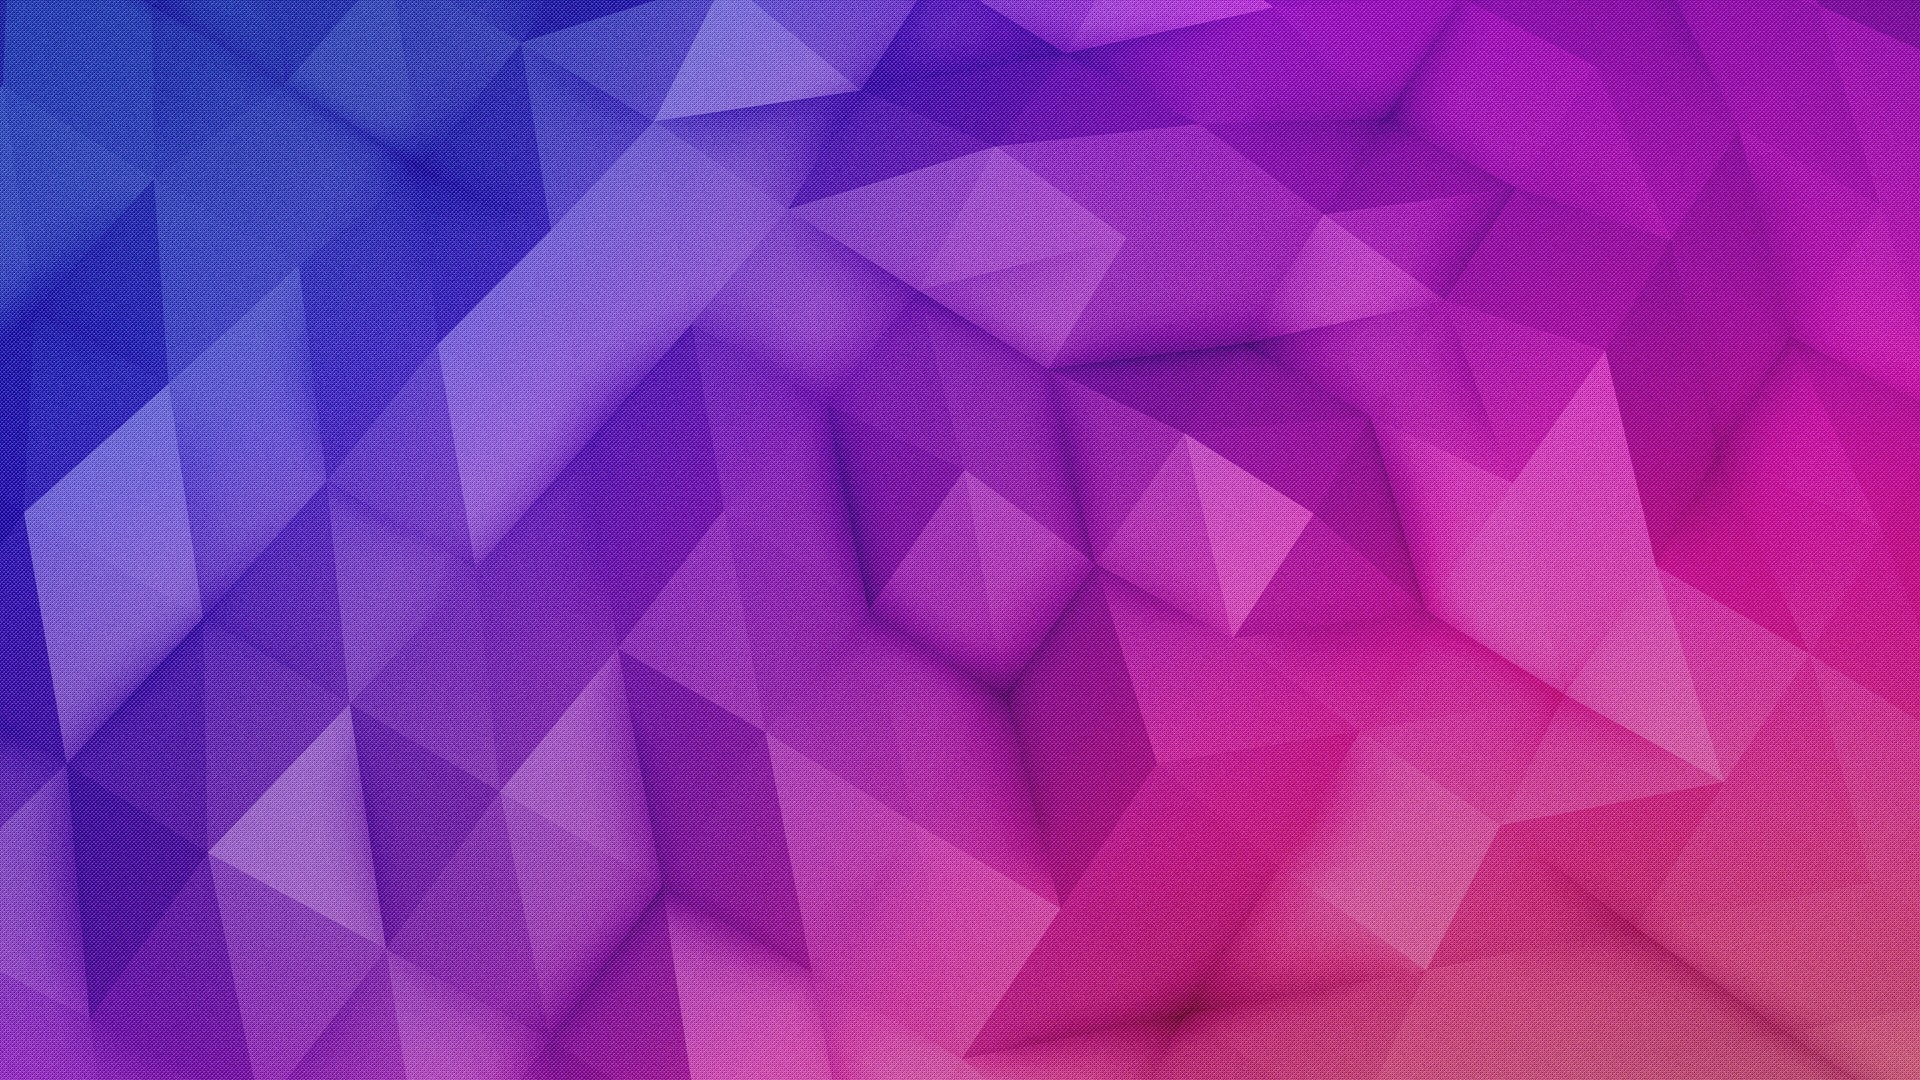 Abstract Geometric 1 1920x1080 wallpaper   1920x1080 Wallpapers 1920x1080